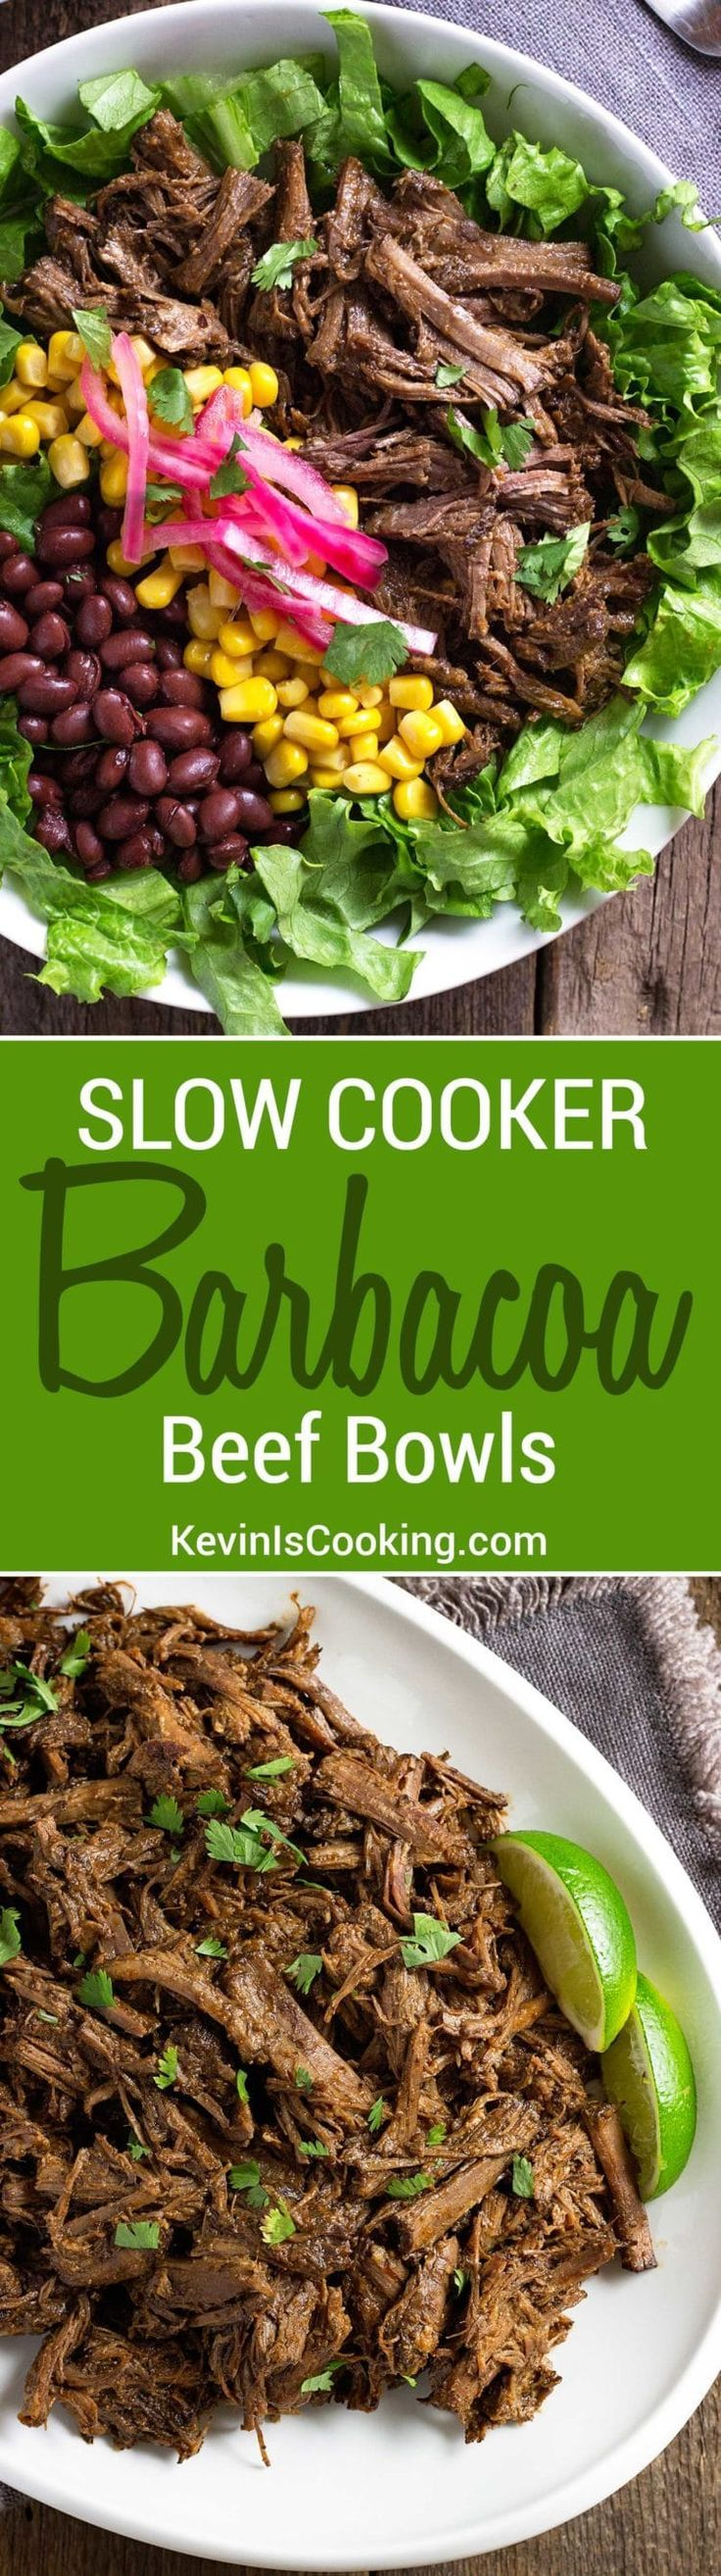 Barbacoa Beef Bowls - slow cooker beef simmered in chipotle, adobo, vinegar, citrus juice and spices for fall apart delicious shredded beef in salad or tacos. via @keviniscooking